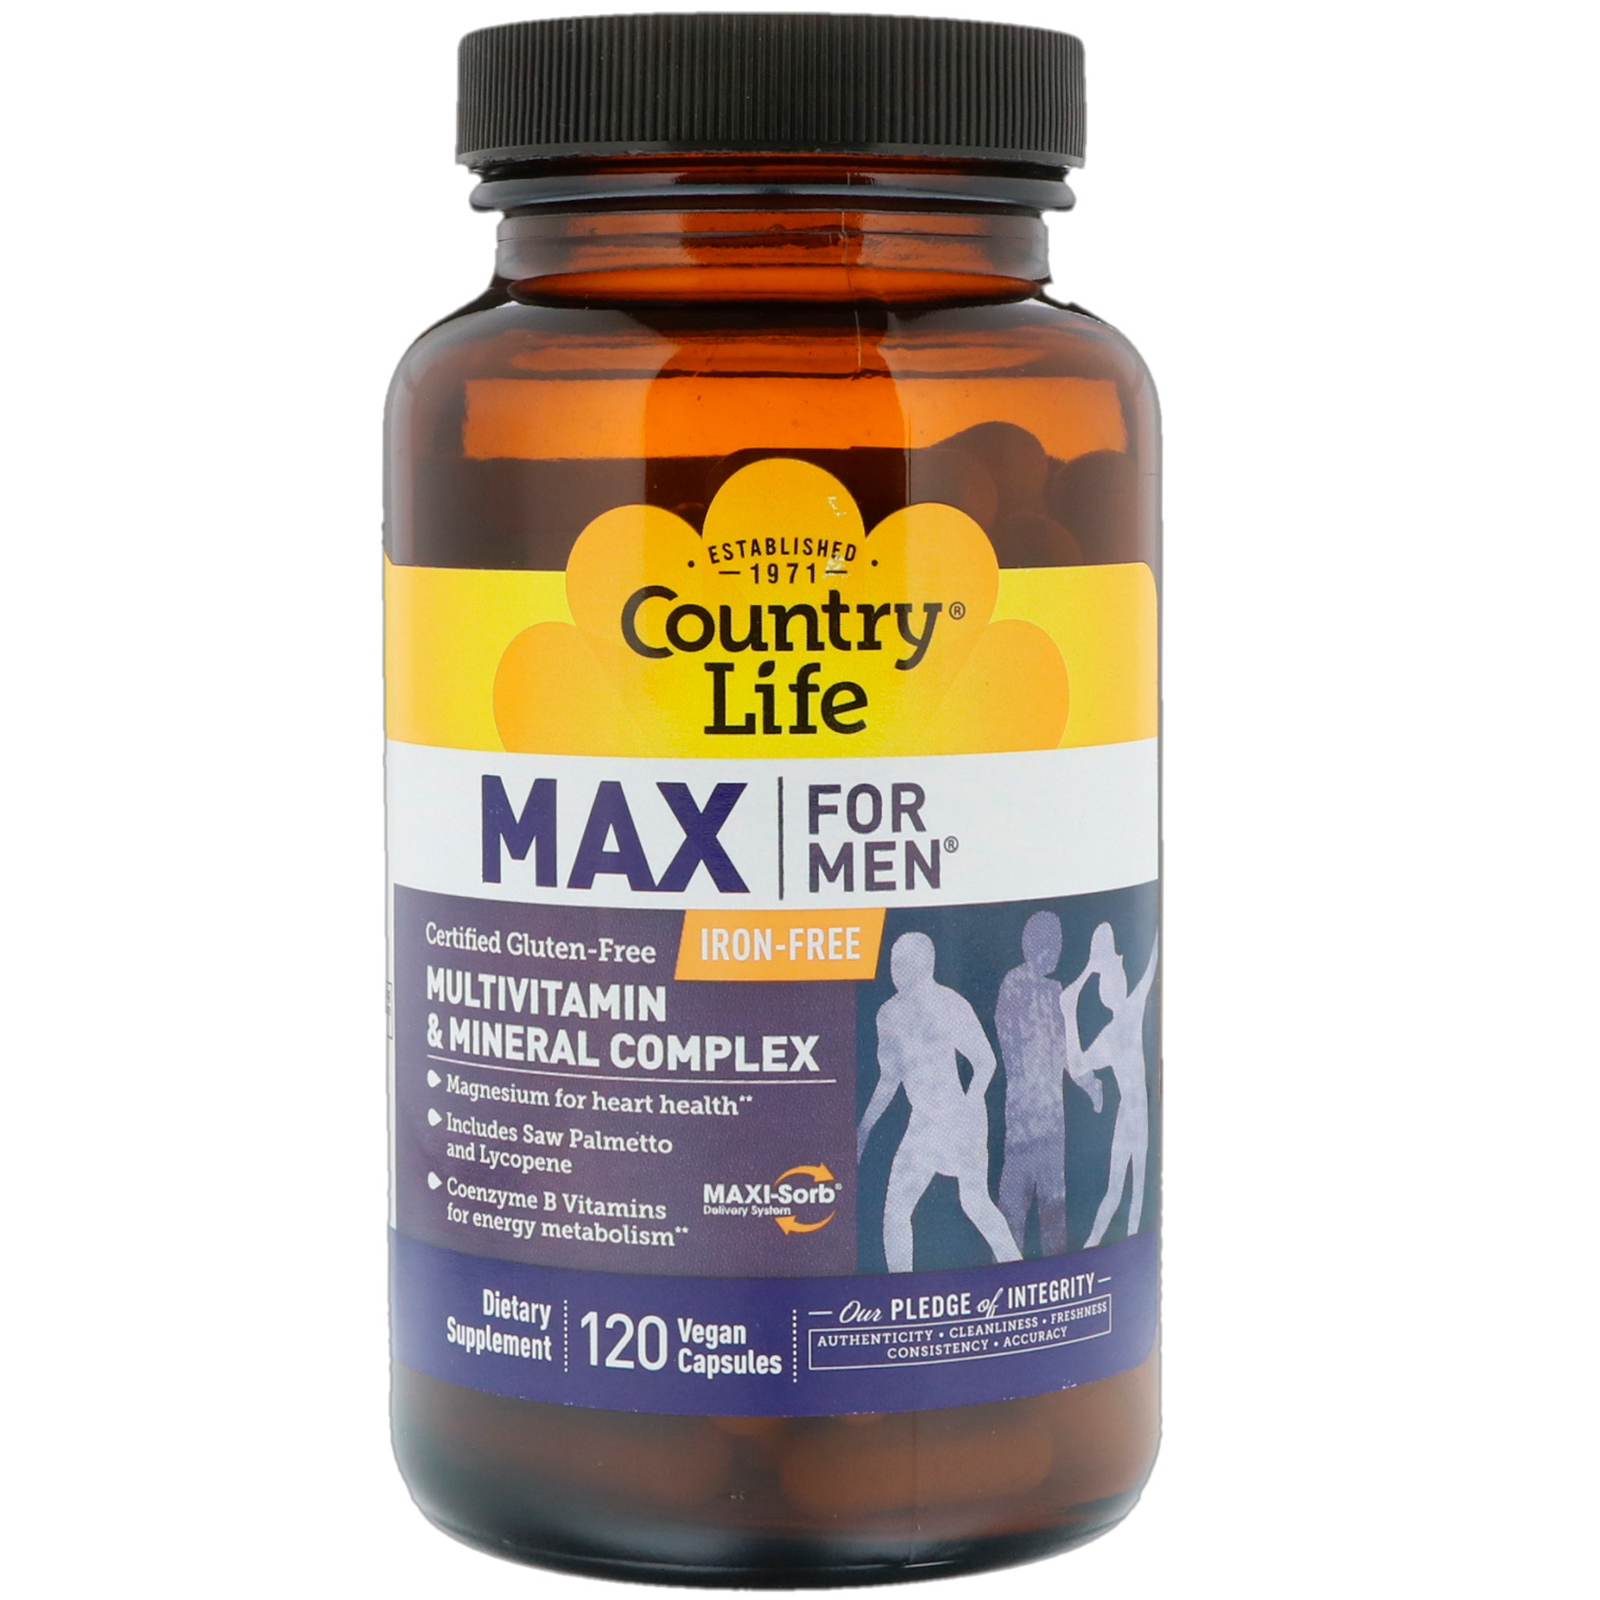 Country Life, Max for Men, Multivitamin & Mineral Complex, Iron-Free, 120  Vegan Capsules